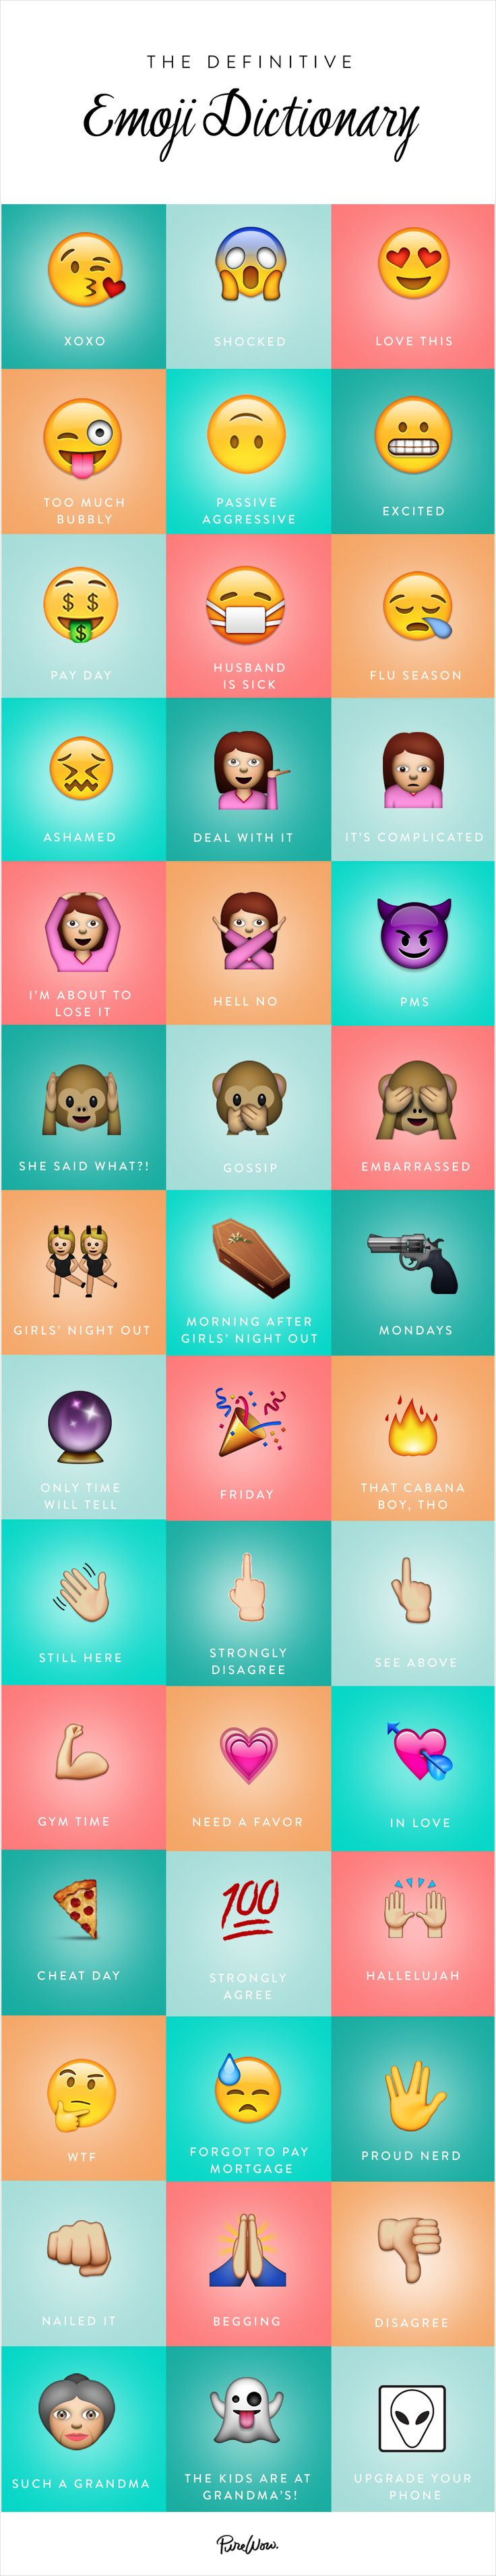 The Definitive Guide to Emojis